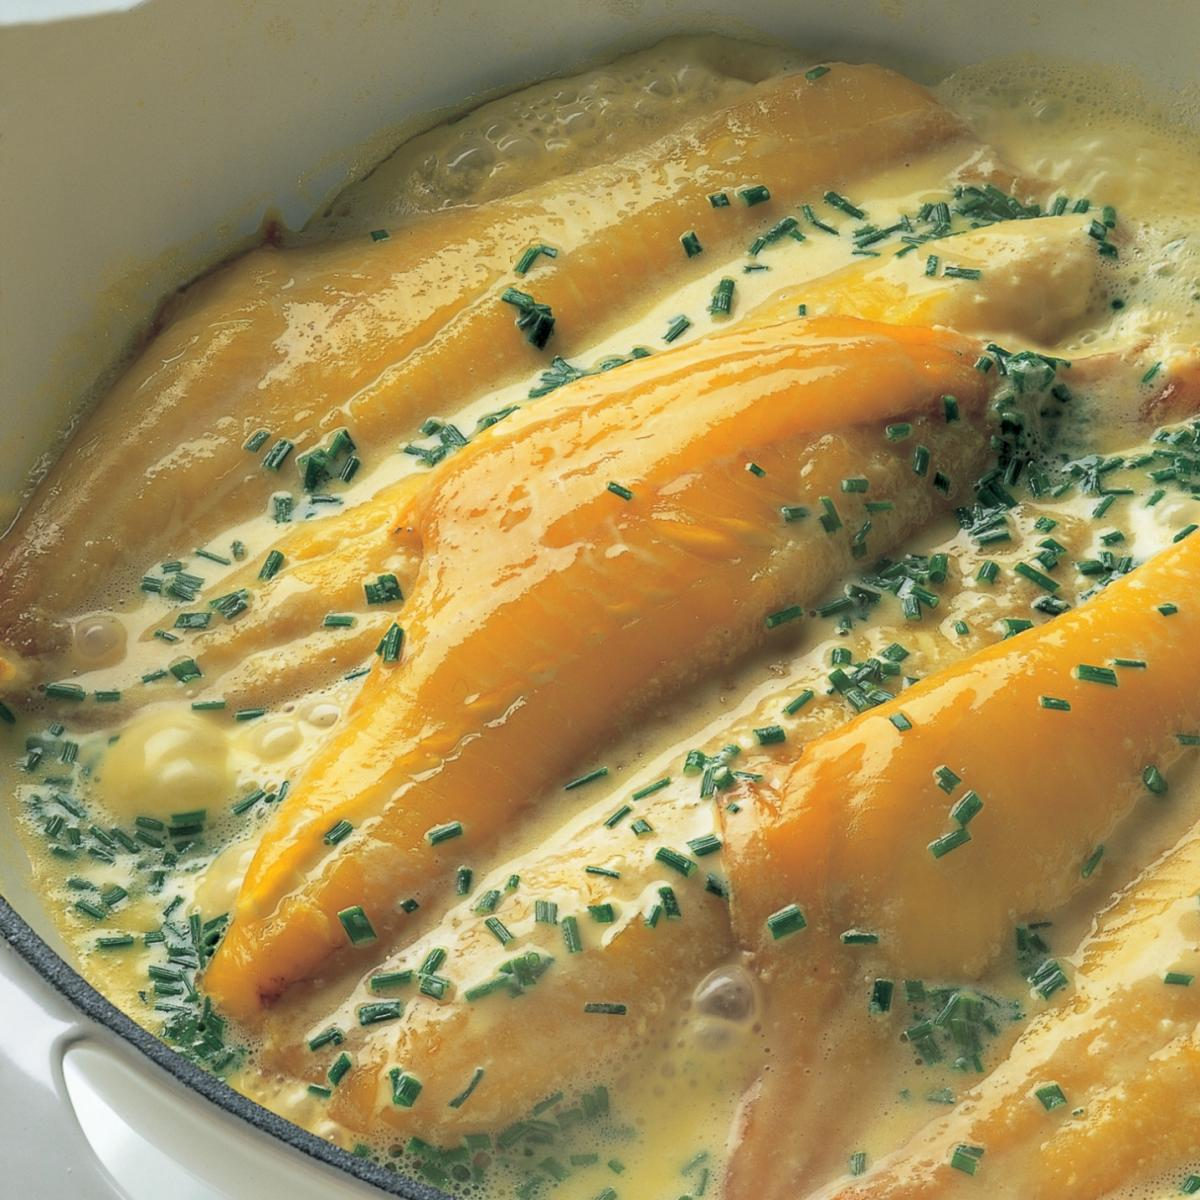 Fish smoked haddock with creme fraiche chive and butter sauce